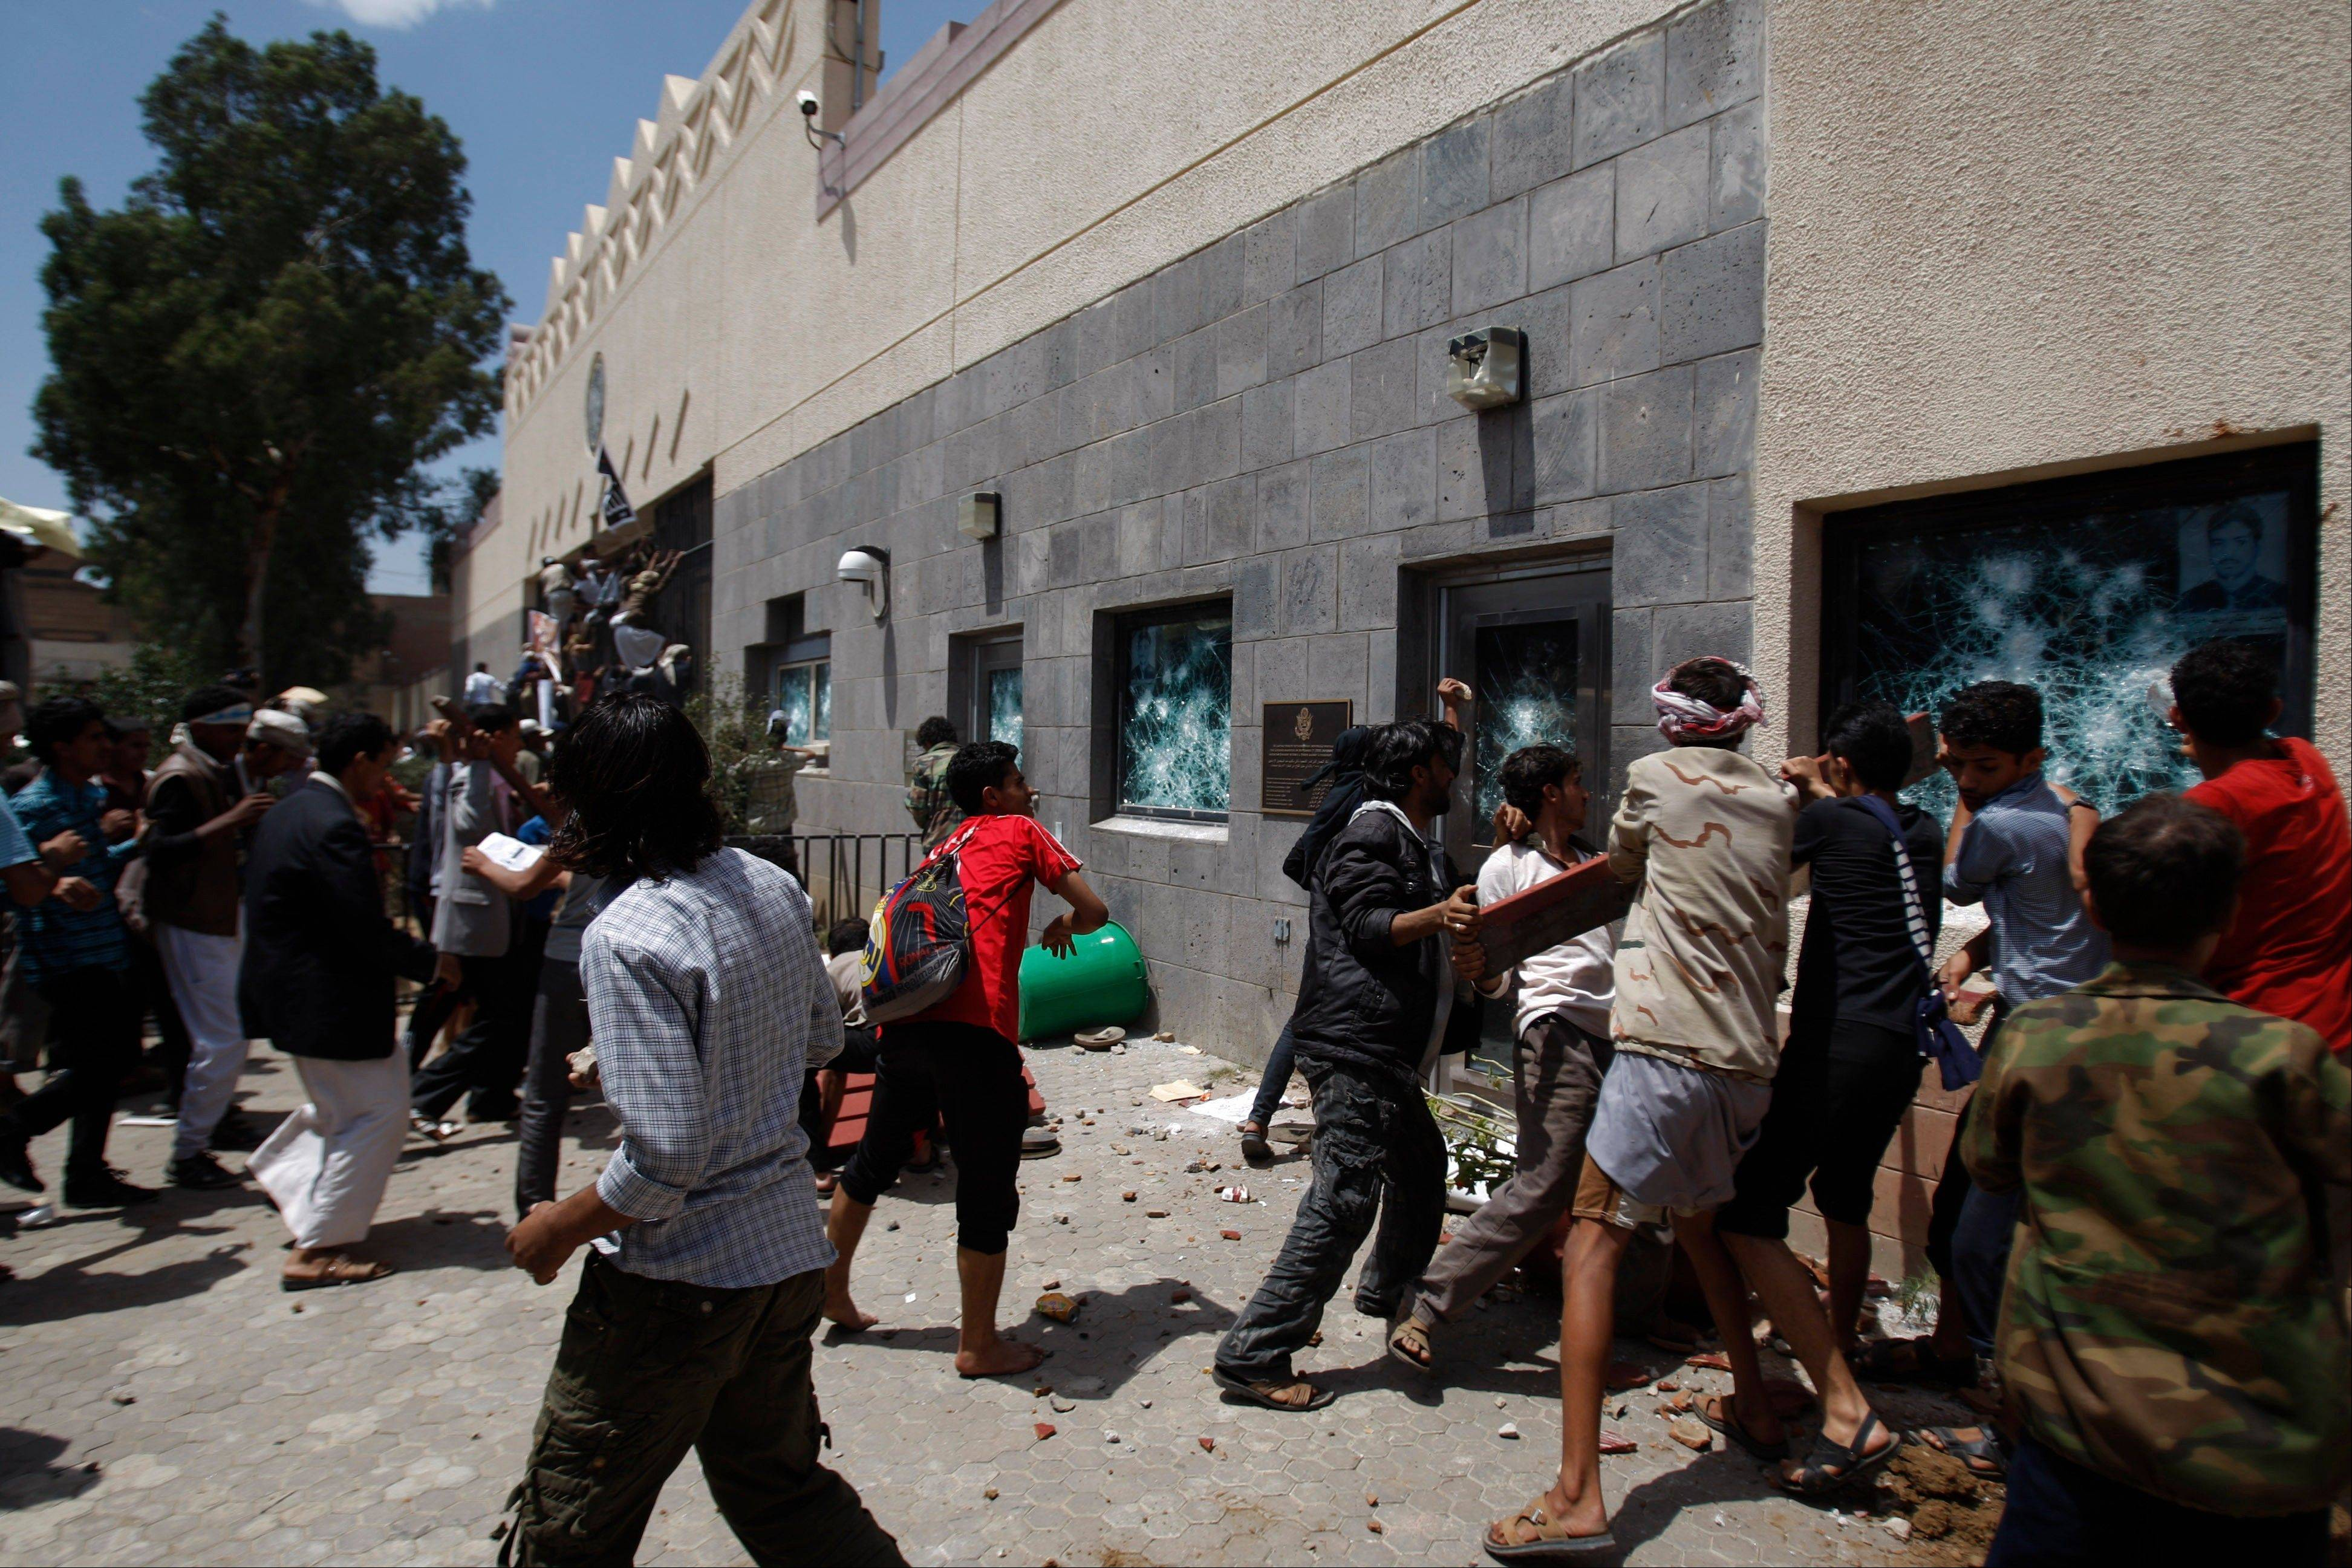 "Yemeni protestors break windows of the U.S. Embassy during a protest about a film ridiculing Islam's Prophet Muhammad, in Sanaa, Yemen, Thursday, Sept. 13, 2012. Dozens of protesters gather in front of the US Embassy in Sanaa to protest against the American film ""The Innocence of Muslims"" deemed blasphemous and Islamophobic."